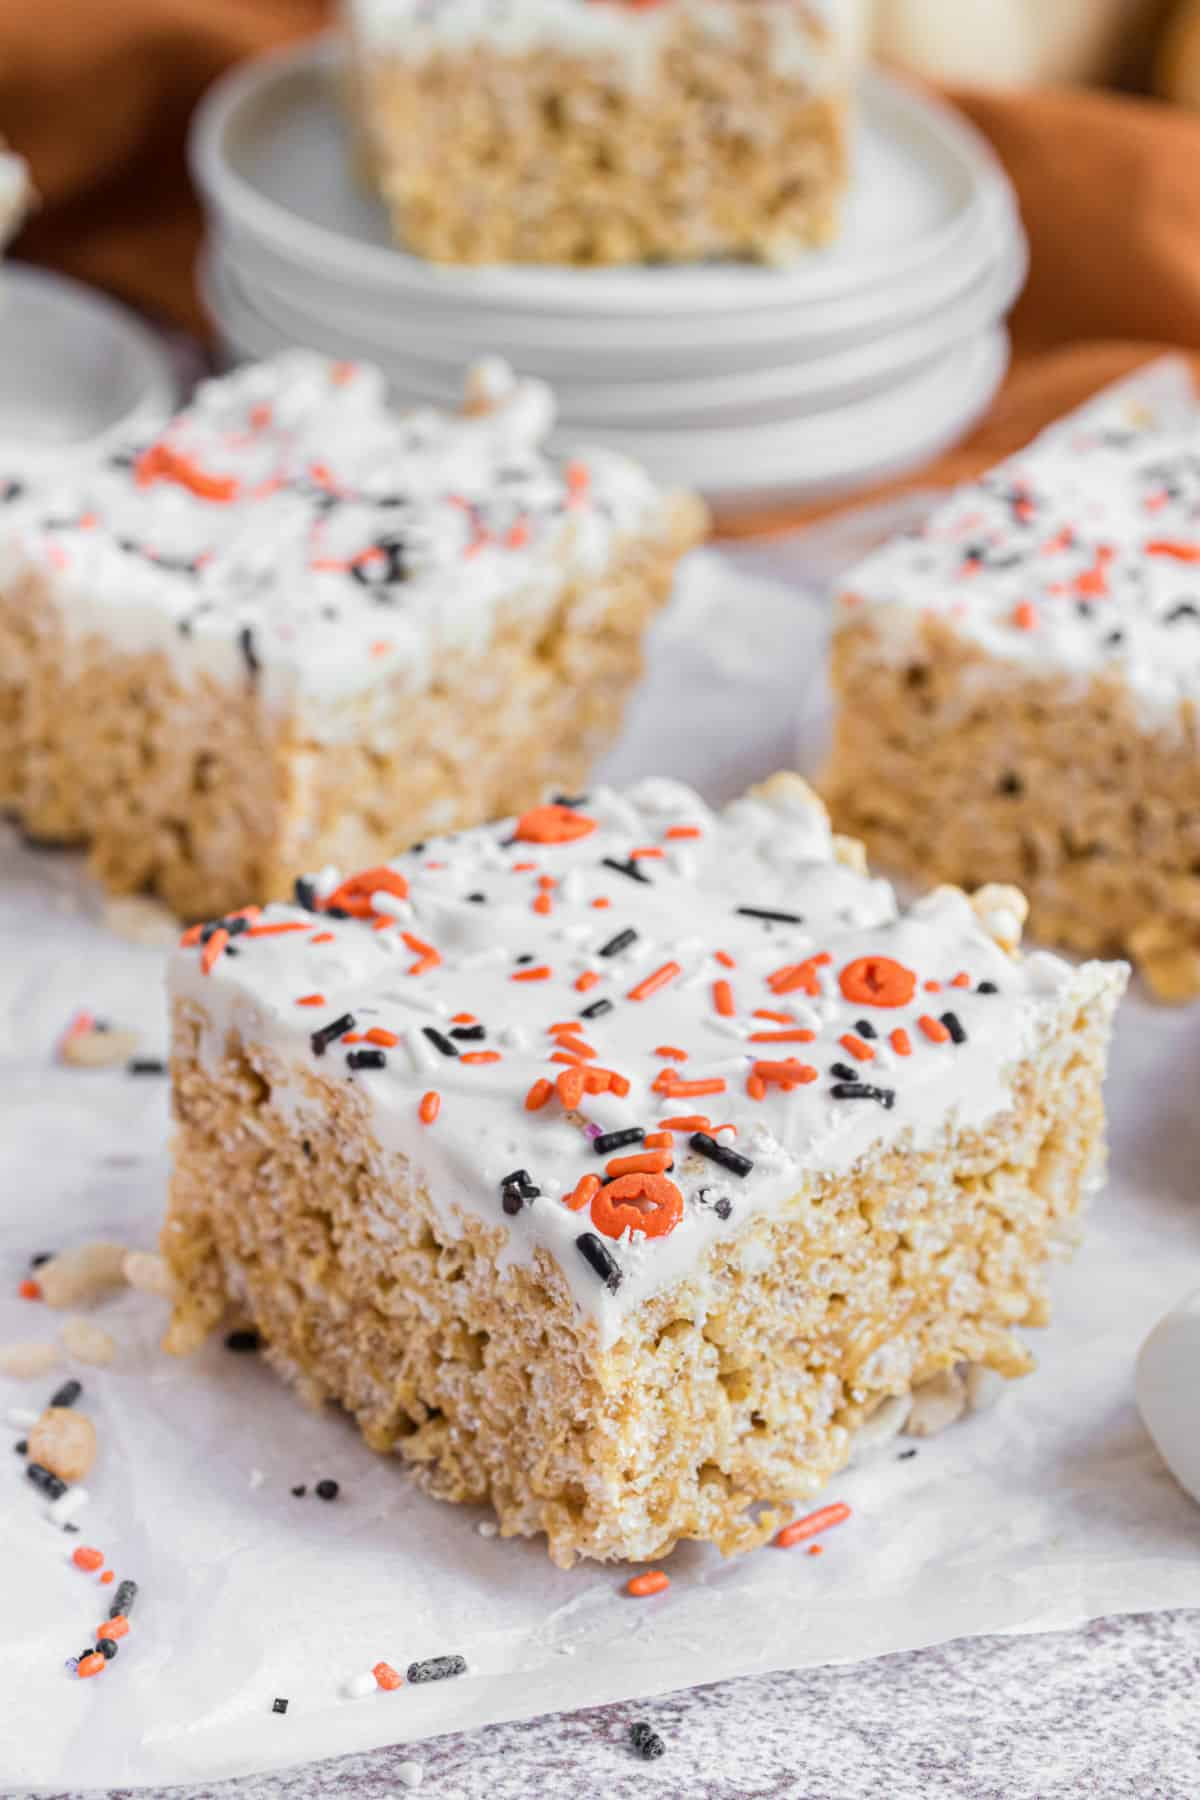 Pumpkin flavored rice krispie treats with white chocolate and sprinkles.